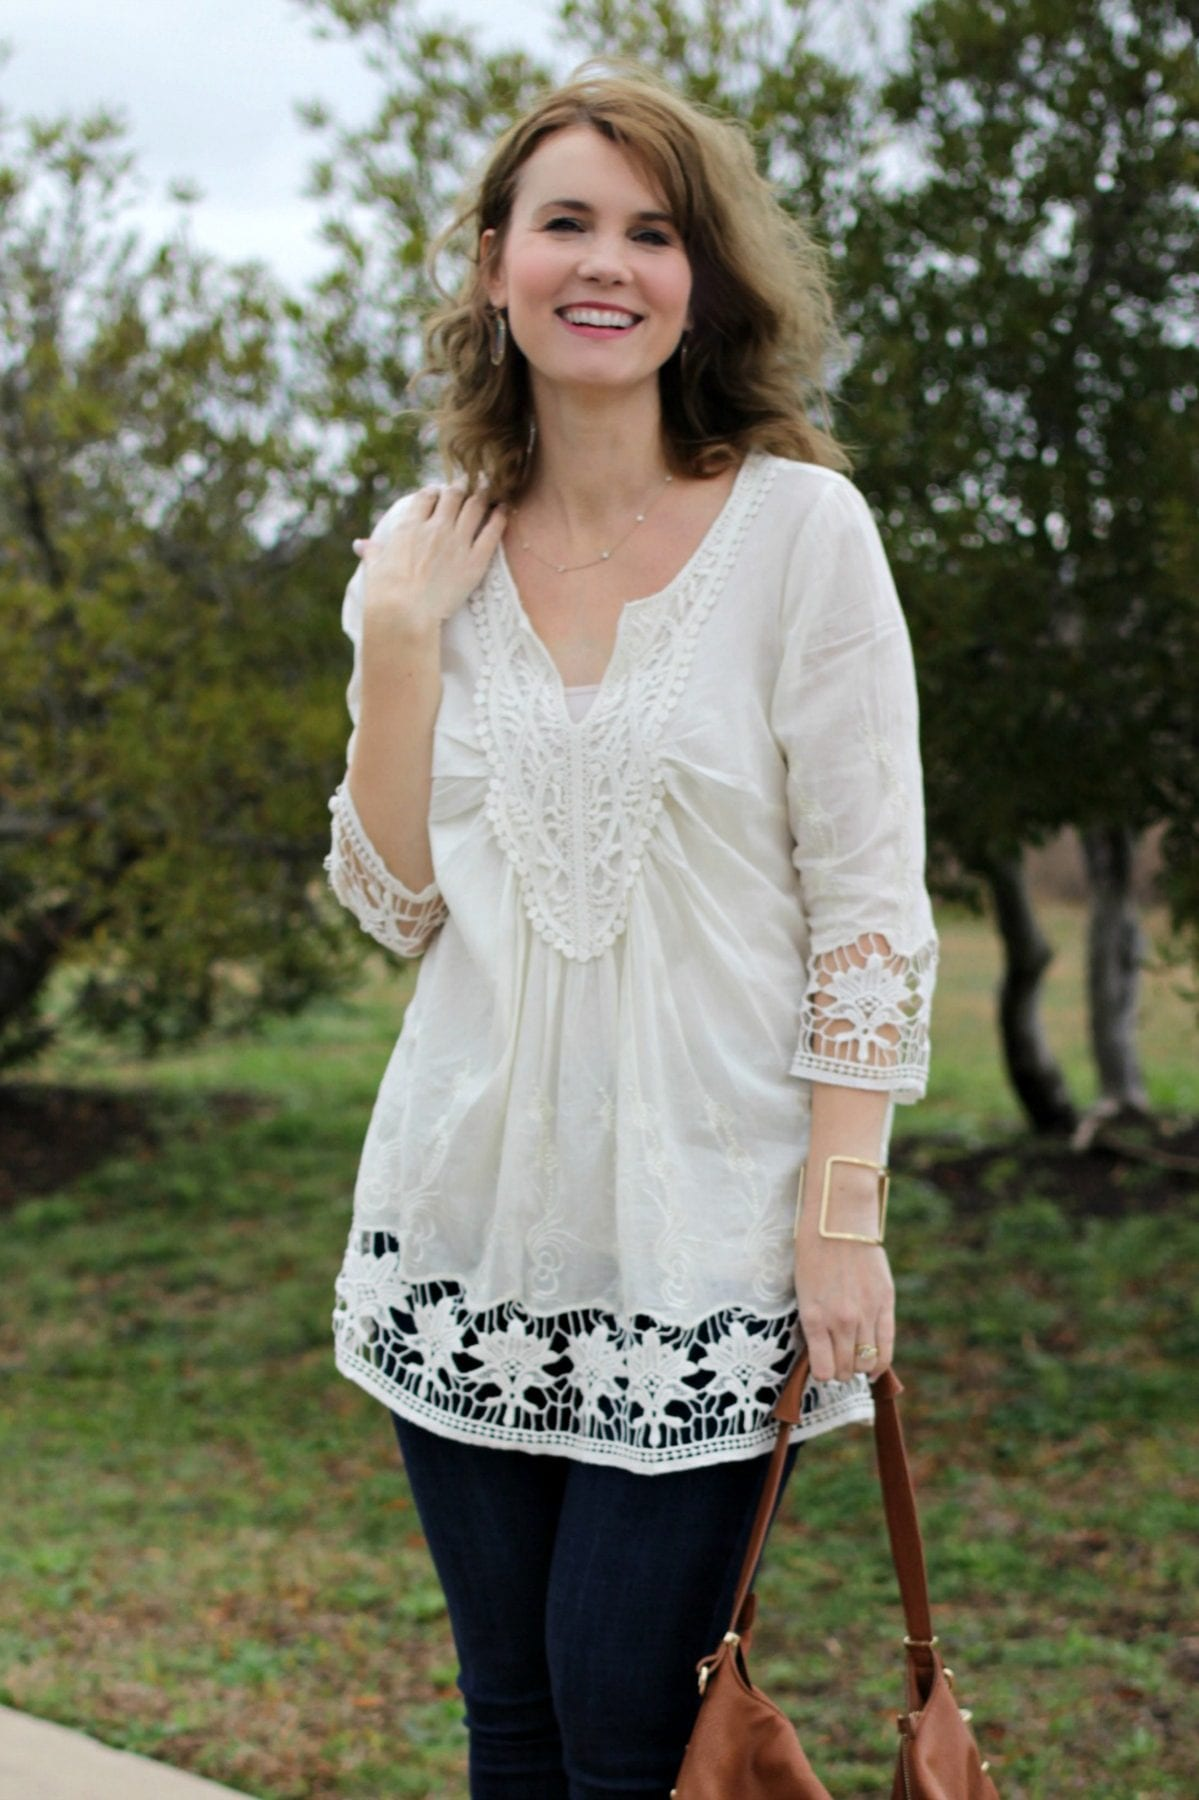 Find great deals on eBay for white tunic shirt. Shop with confidence.